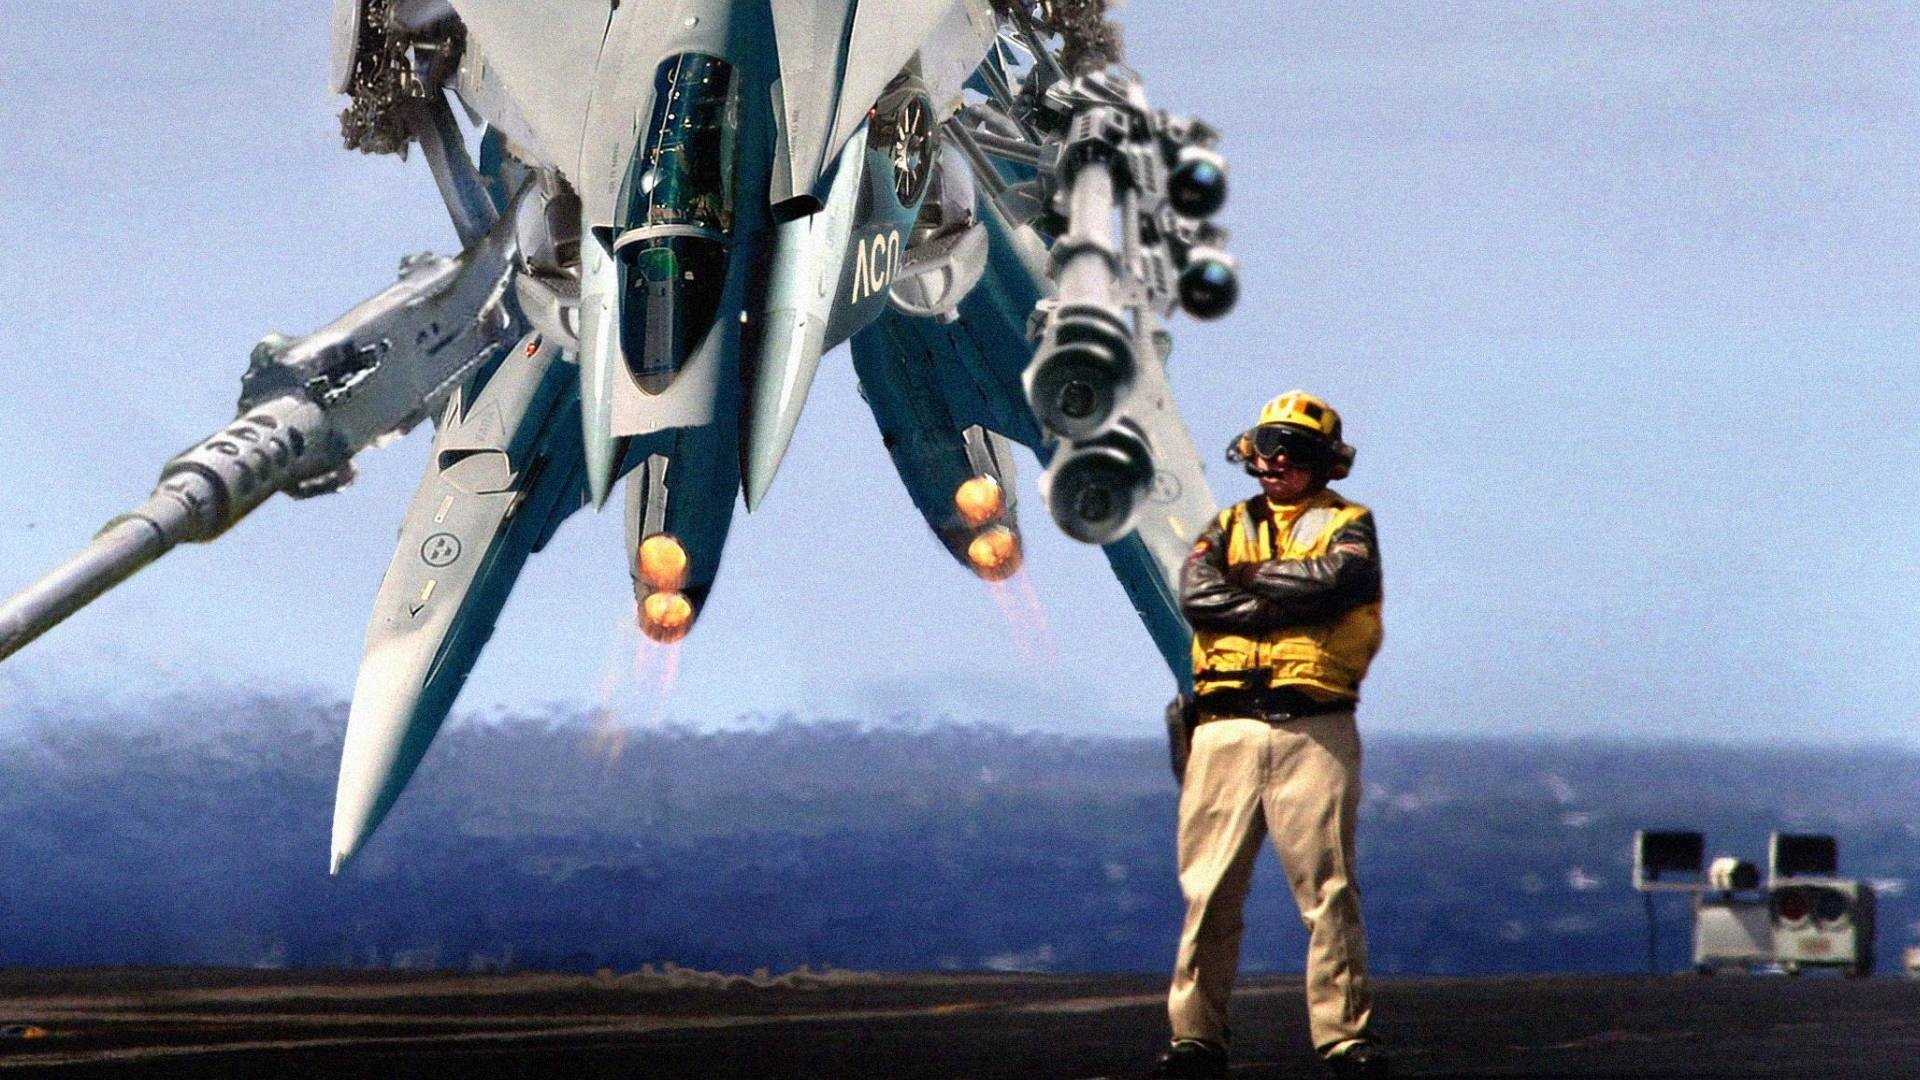 Navy Wallpaper Military Pictures: Military Wallpapers And Screensavers (70+ Images